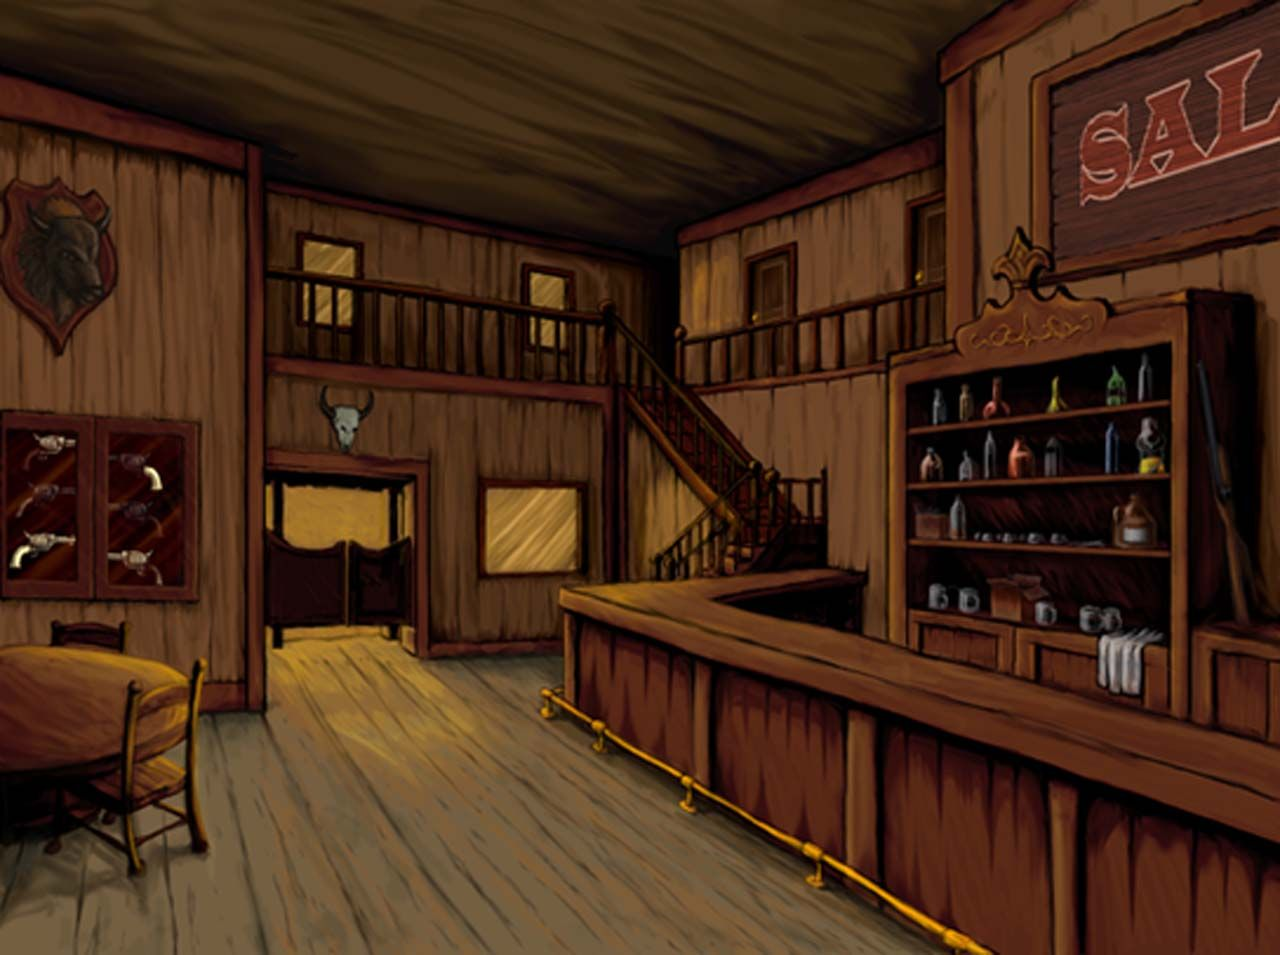 Old West Saloon by Halo34.deviantart.com on @deviantART | Bar F&L ...